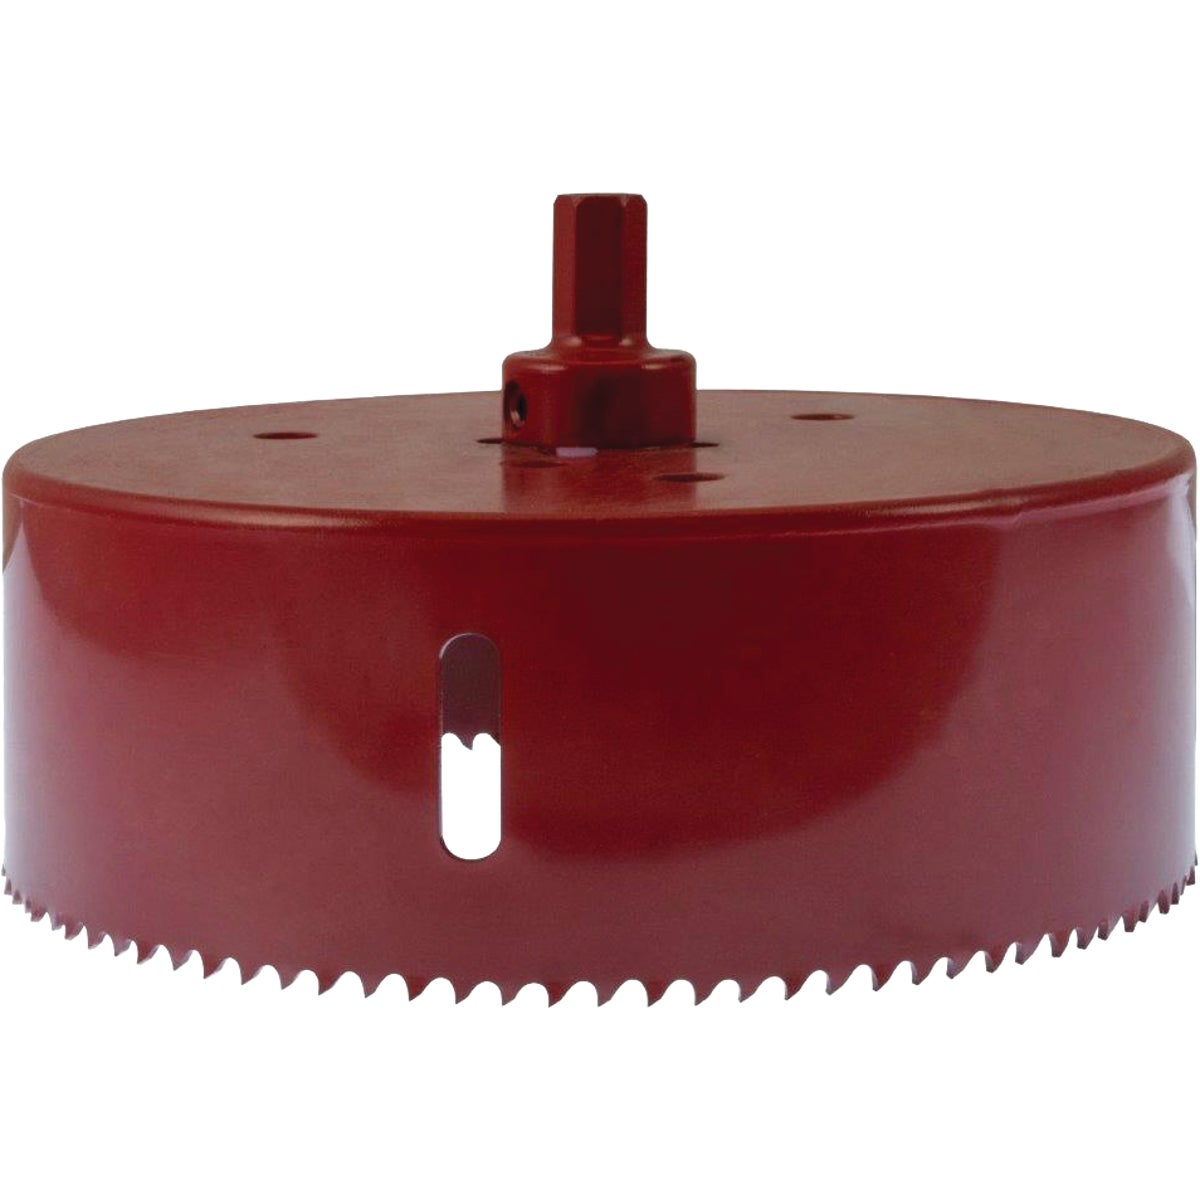 "5"" HOLE SAW - 311294 by M K Morse Co"